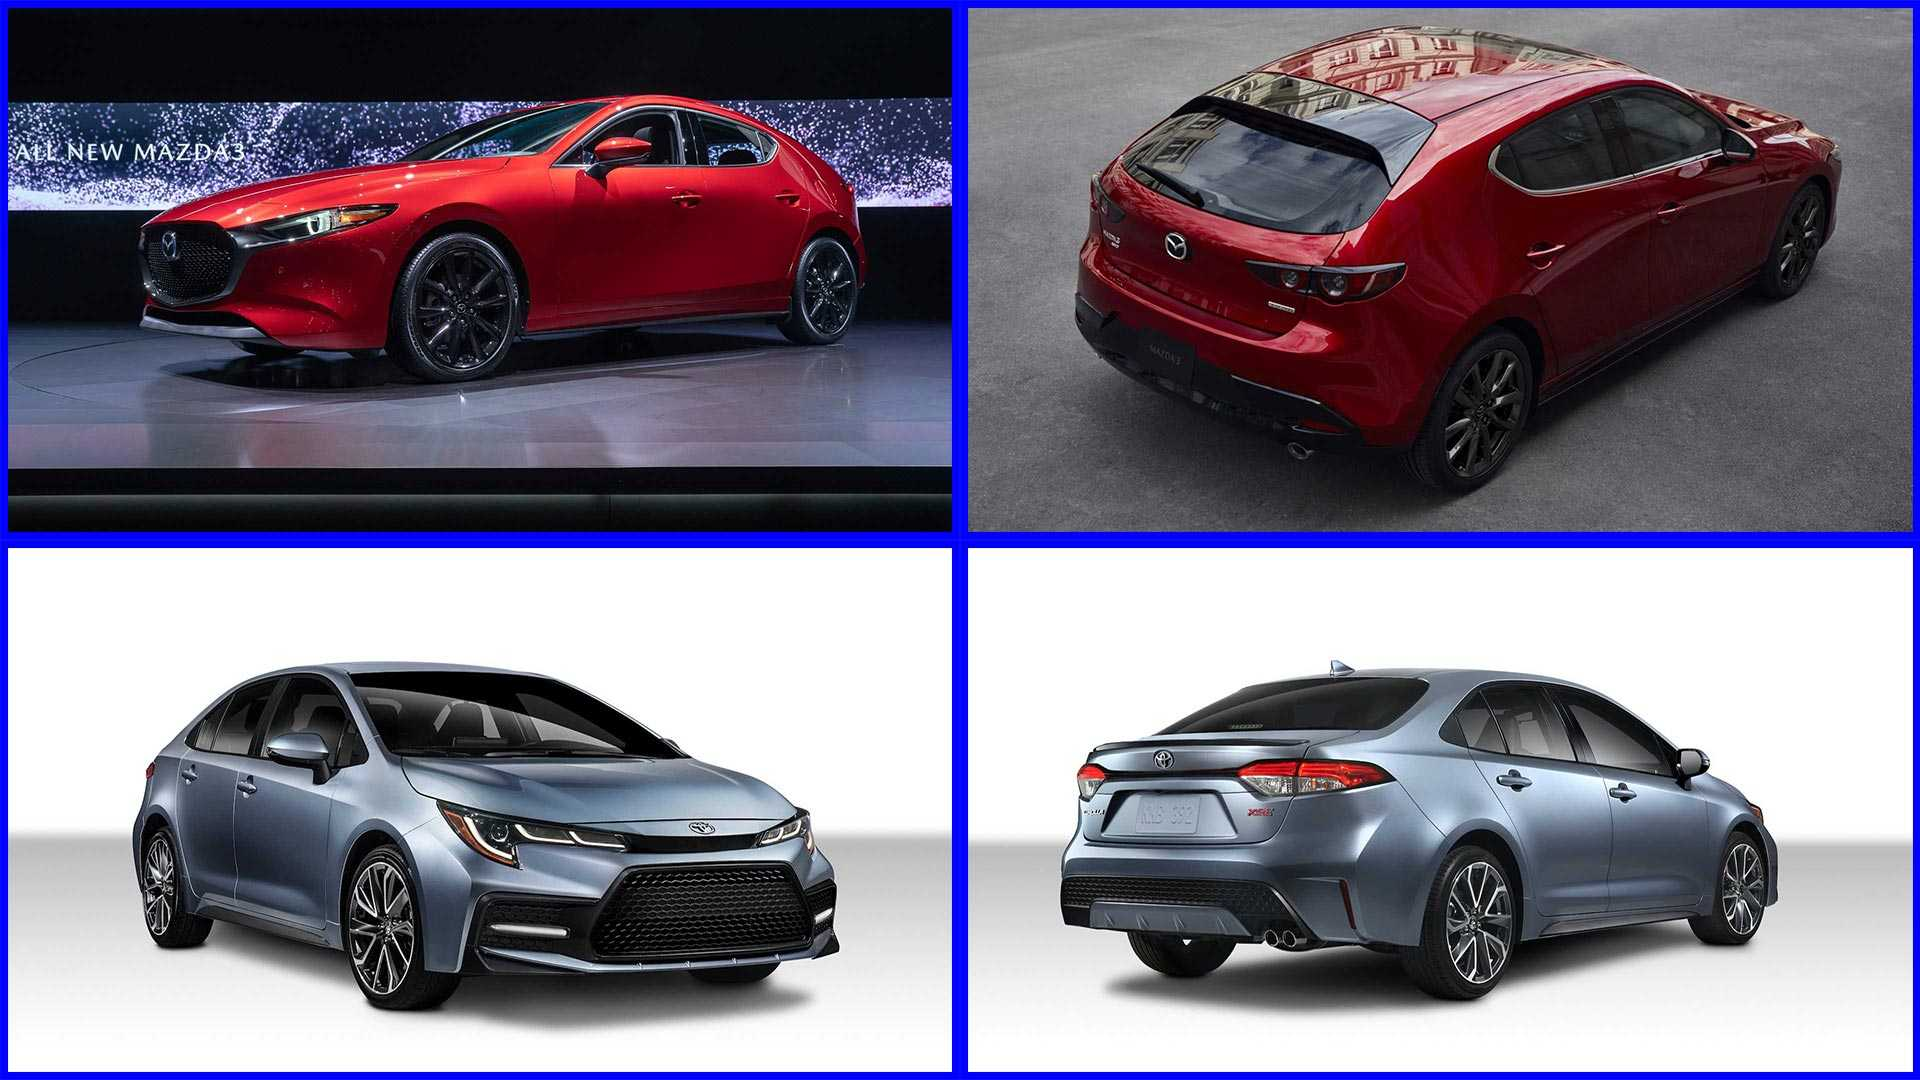 53 The New 2019 Corolla Hatchback Vs Mazda 3 Specs New Review with New 2019 Corolla Hatchback Vs Mazda 3 Specs